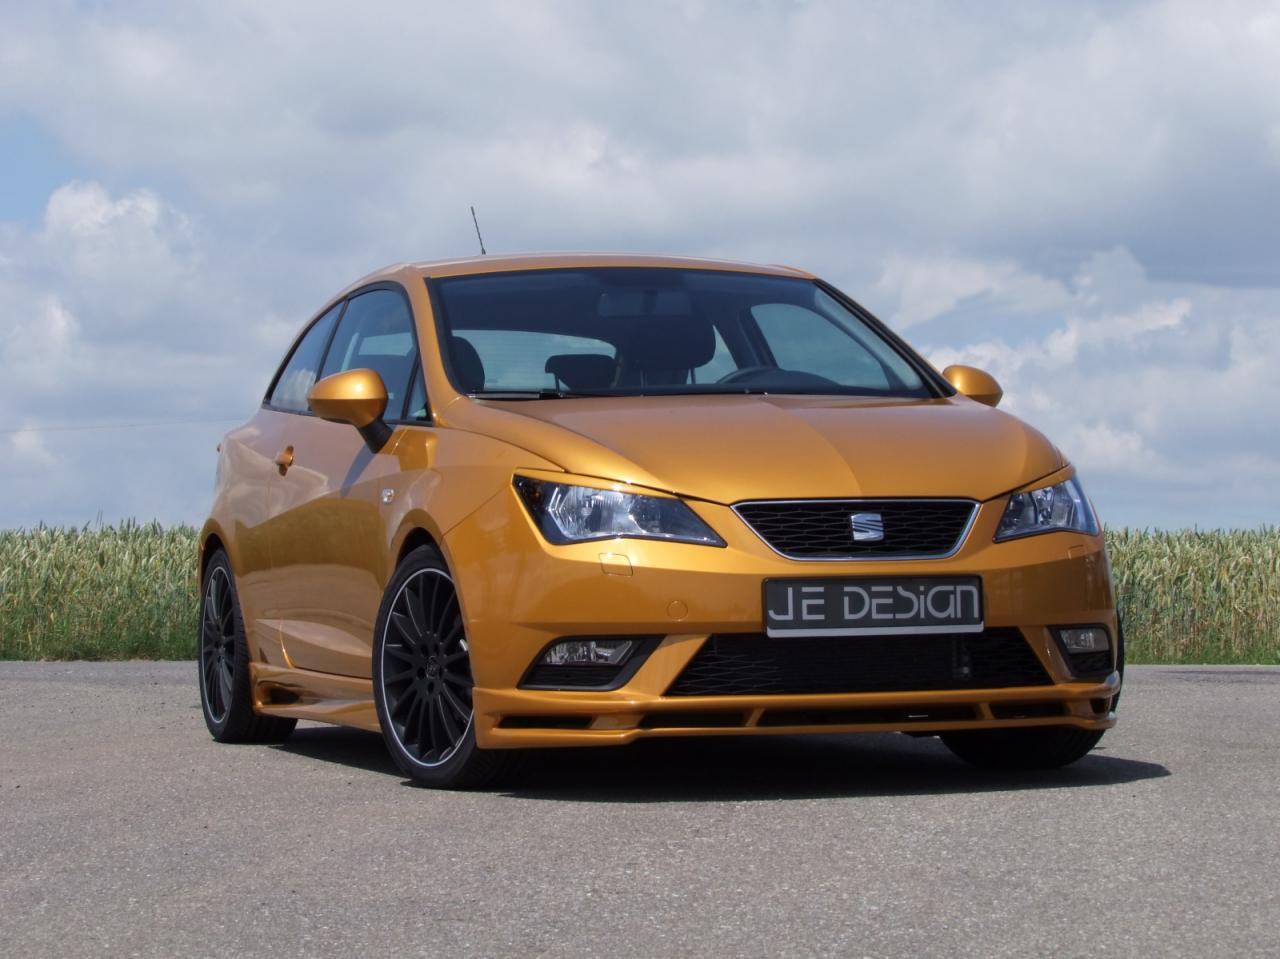 je design reveals seat ibiza tuning carz tuning. Black Bedroom Furniture Sets. Home Design Ideas